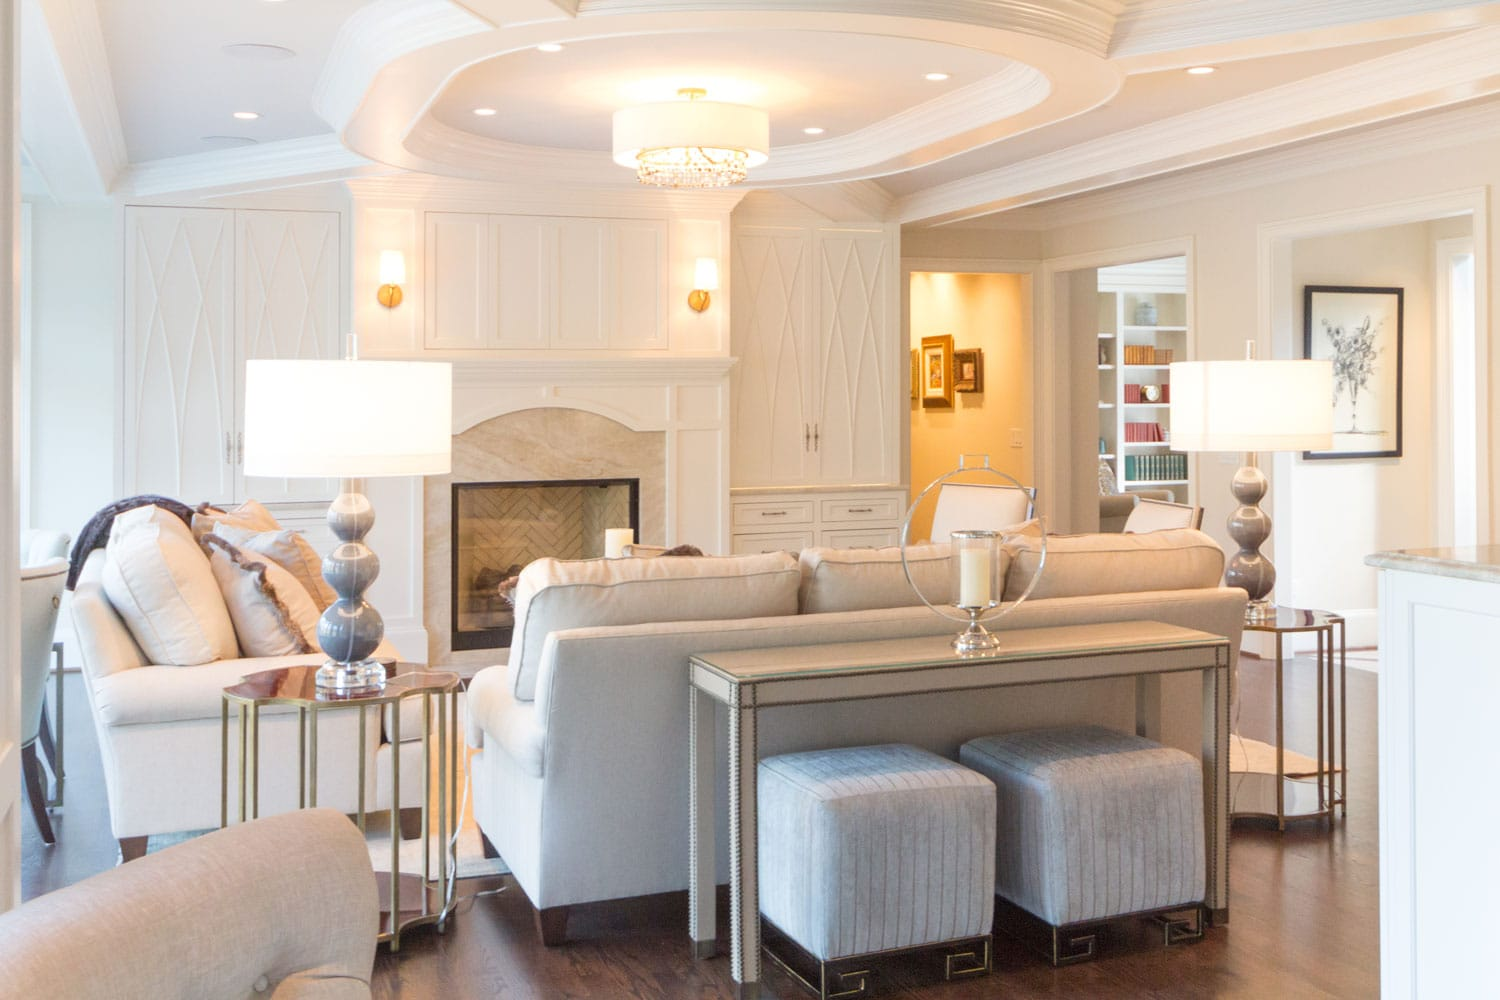 Living area interiors in Riverland Court, Atlanta